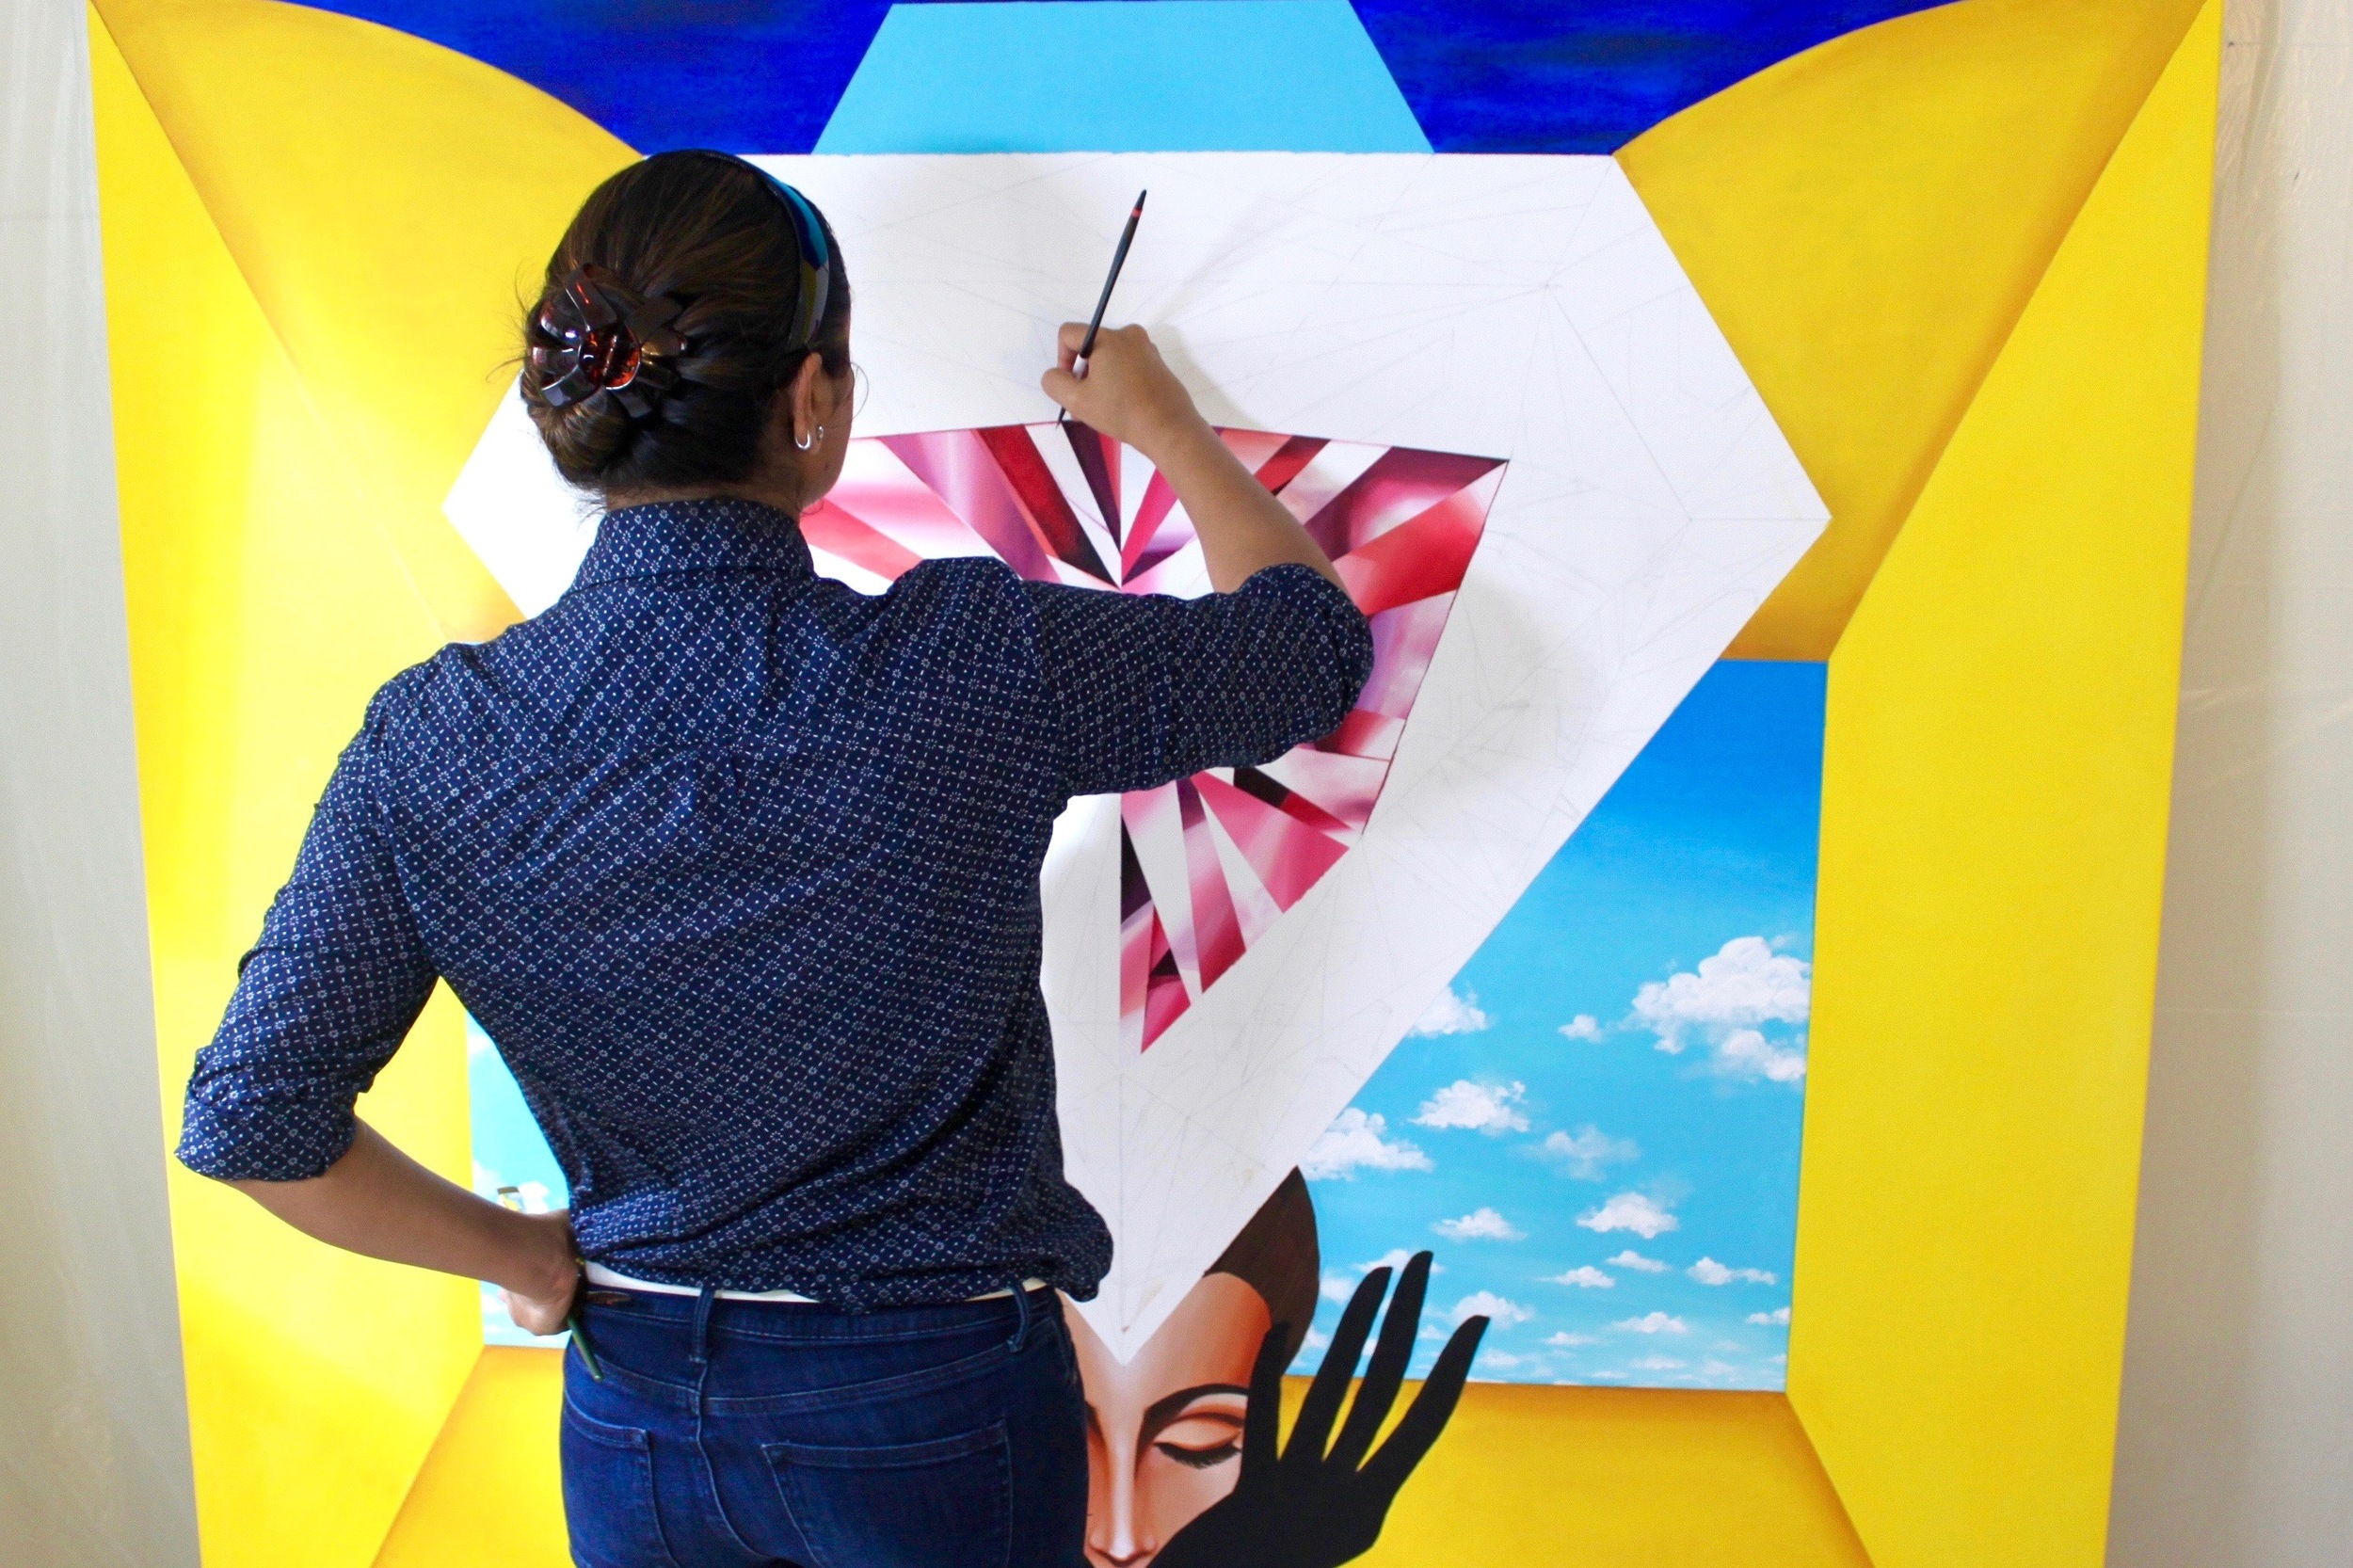 Reena Ahluwalia_making of Portal of Empowerment_Diamond painting2